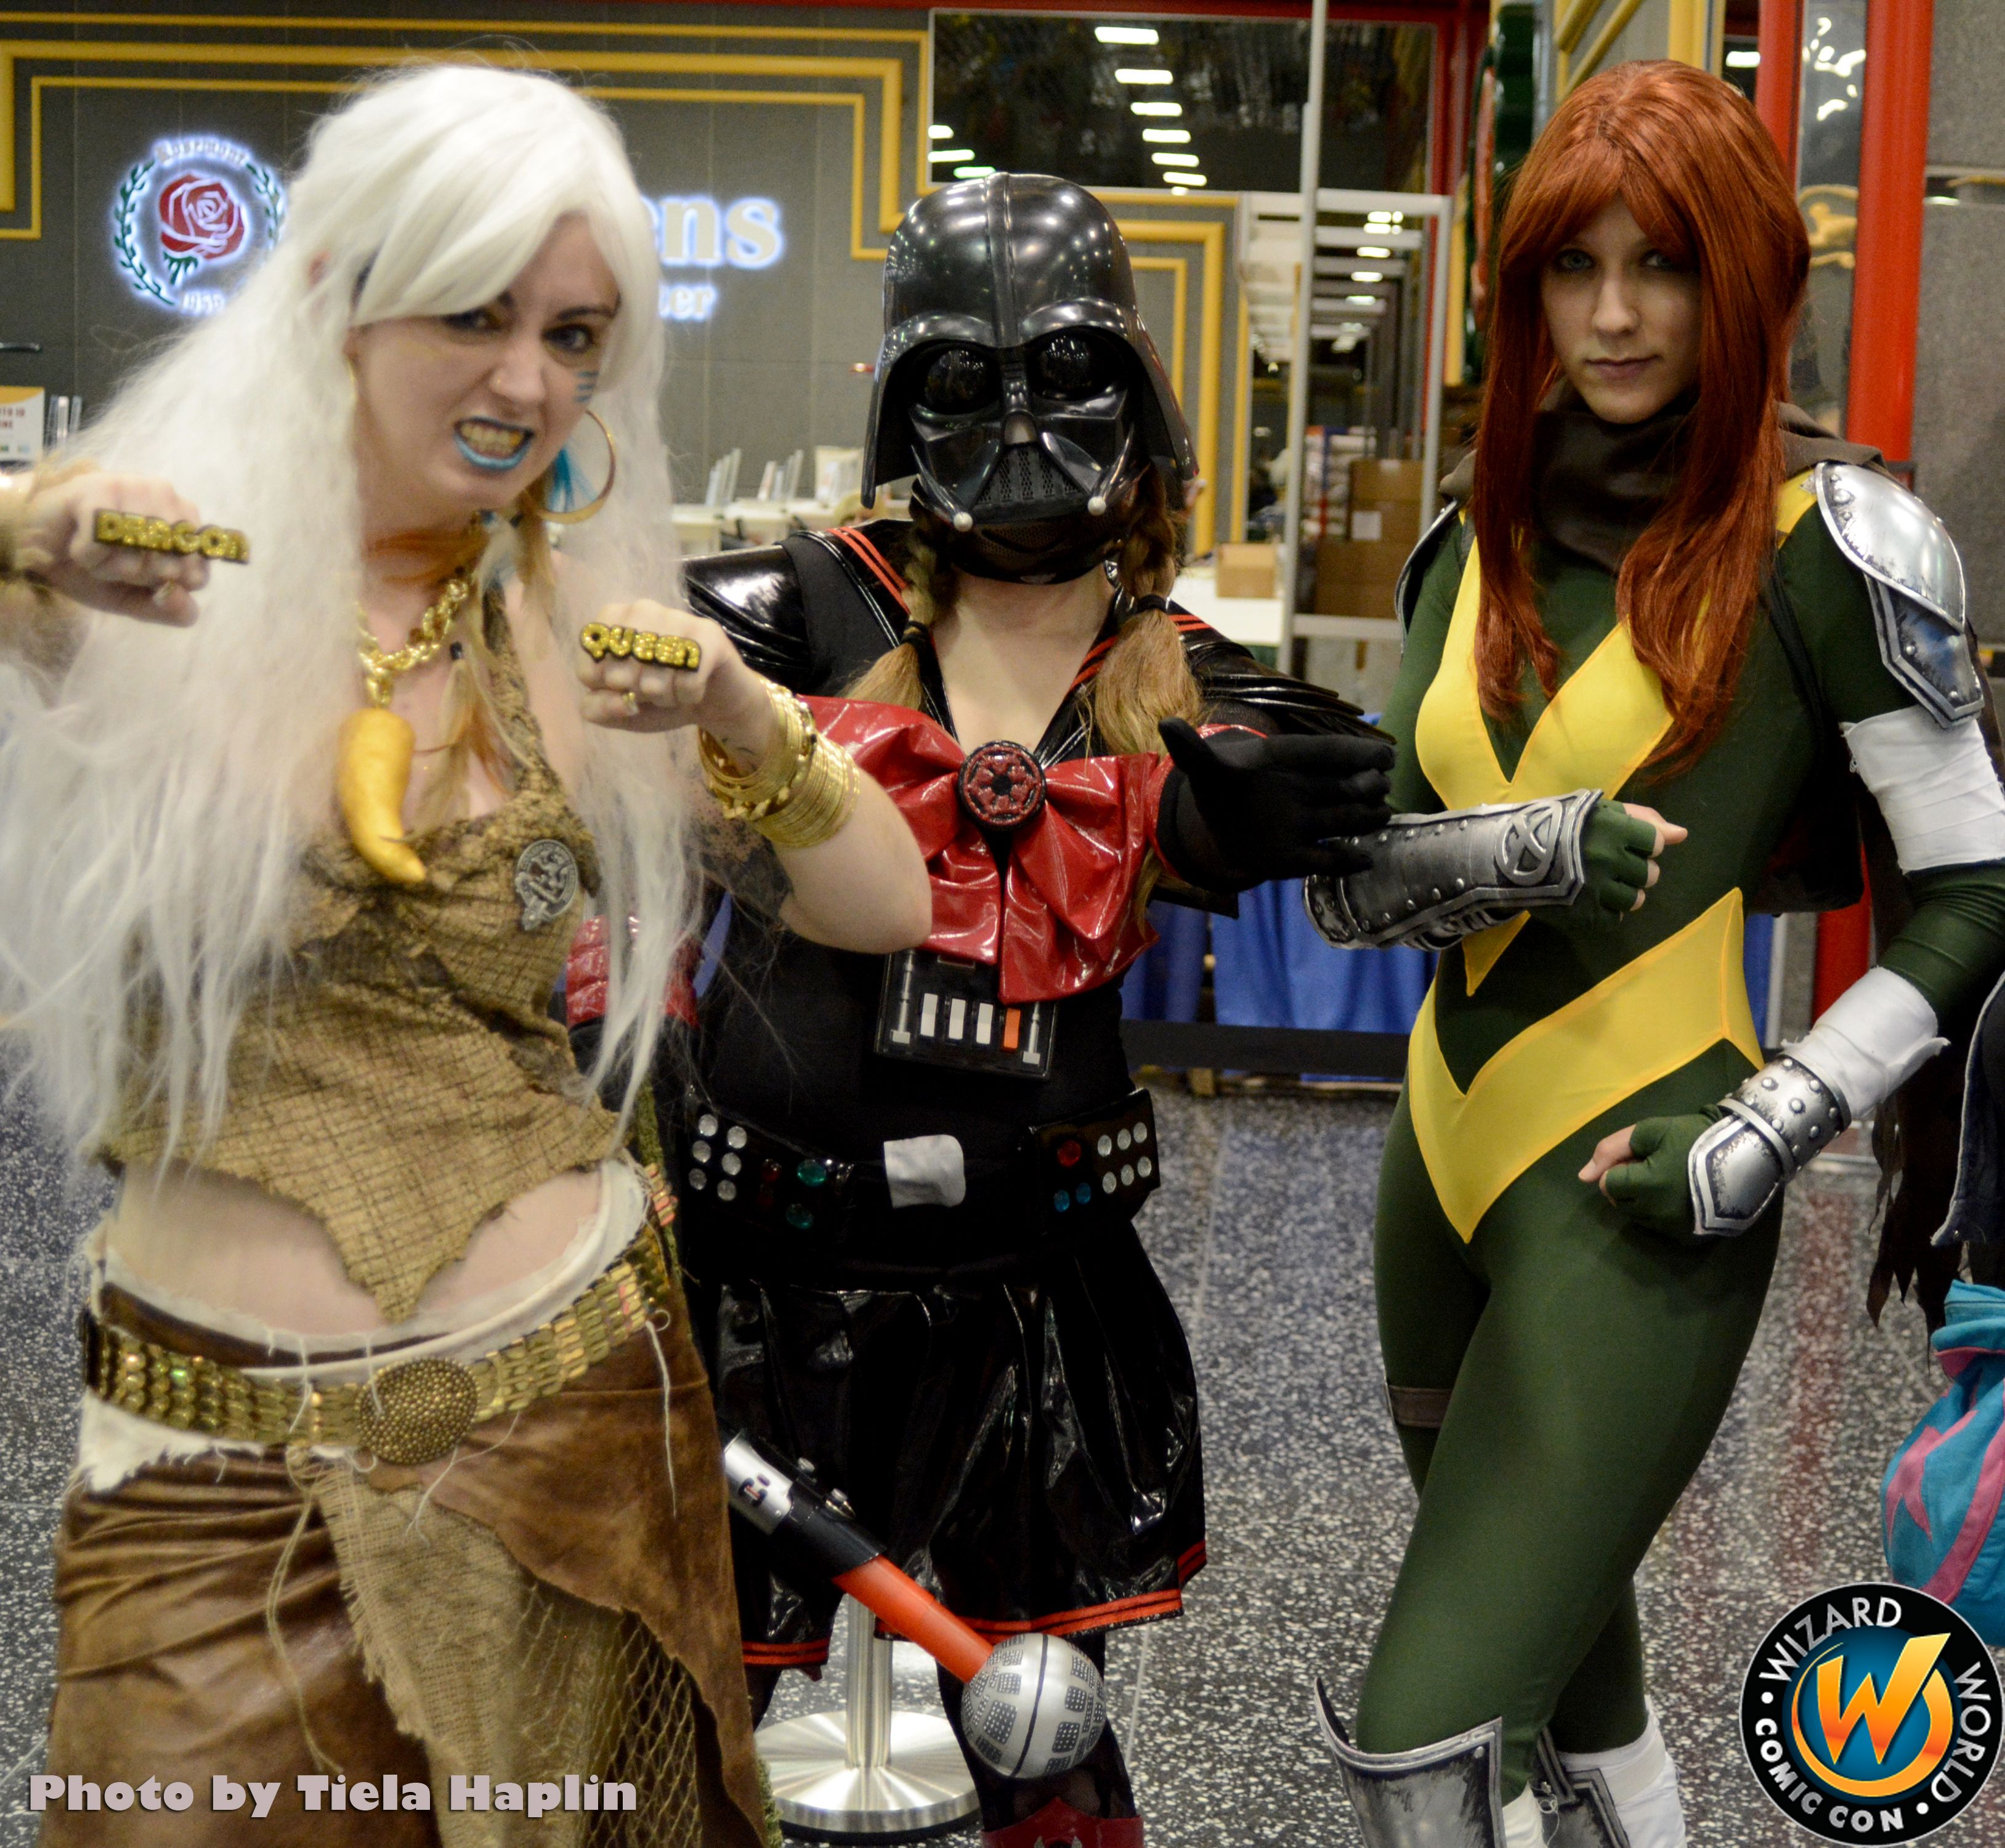 Ready to enter the world of Wizard World!, check out Wizard World Ohio Comic Con Sep 20-22, 2013!! Click http://www.wizardworld.com/home-ohio.html